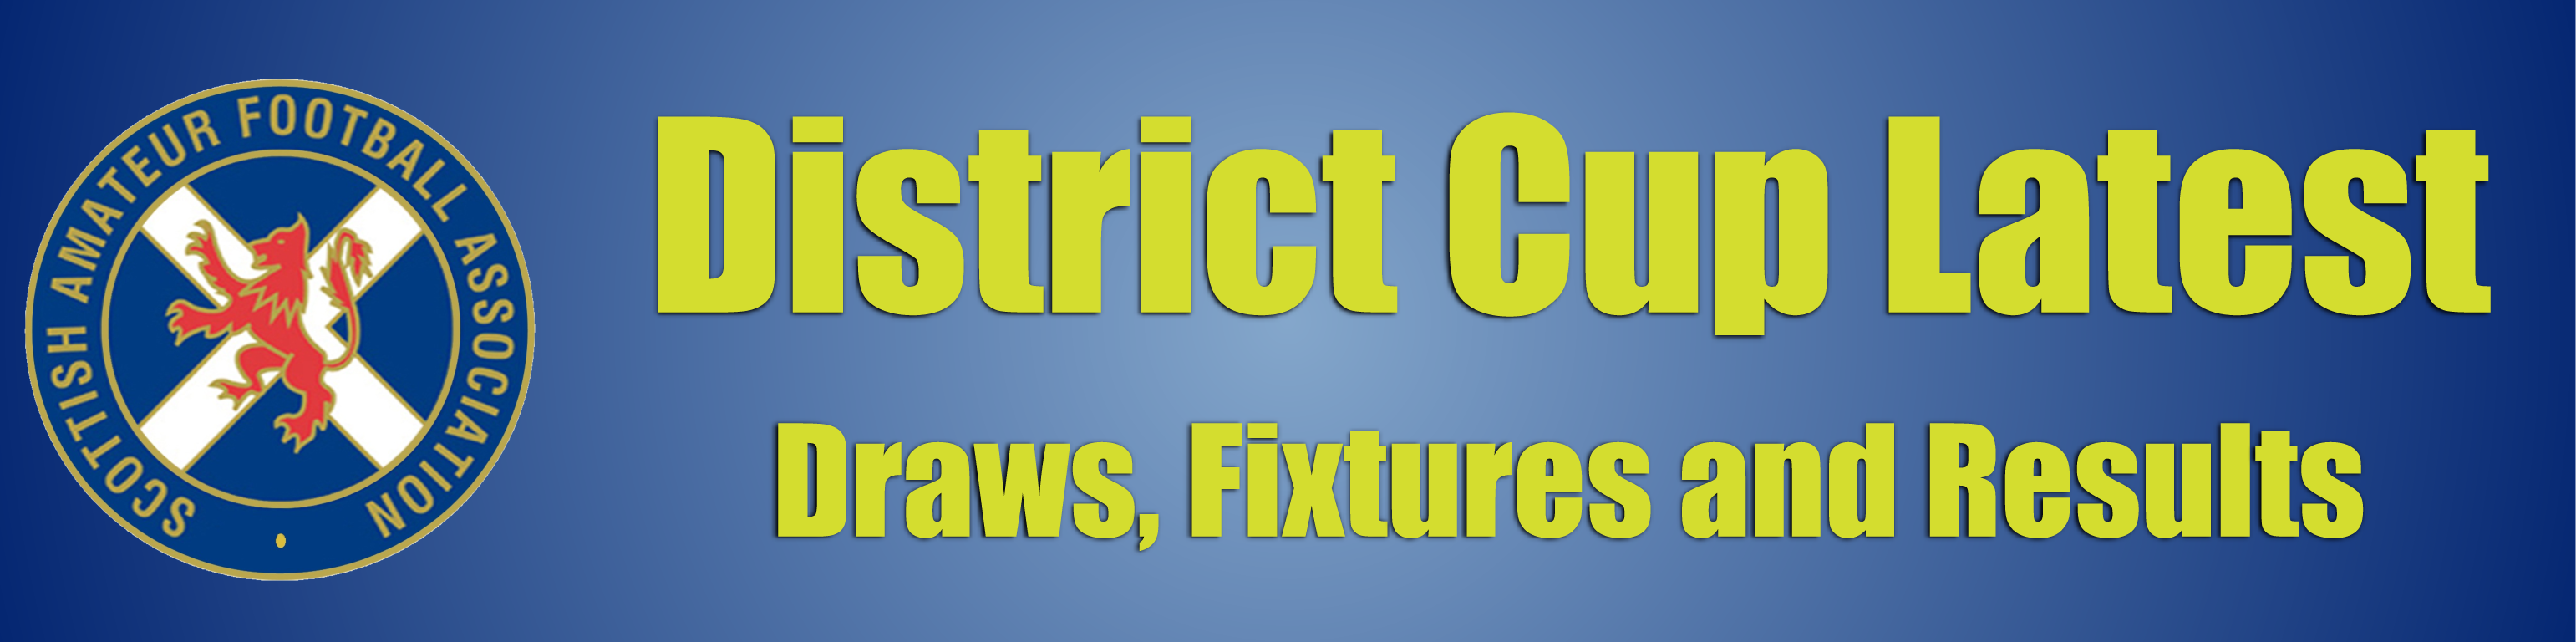 District Cup Latest (Draws, Fixtures and Results)